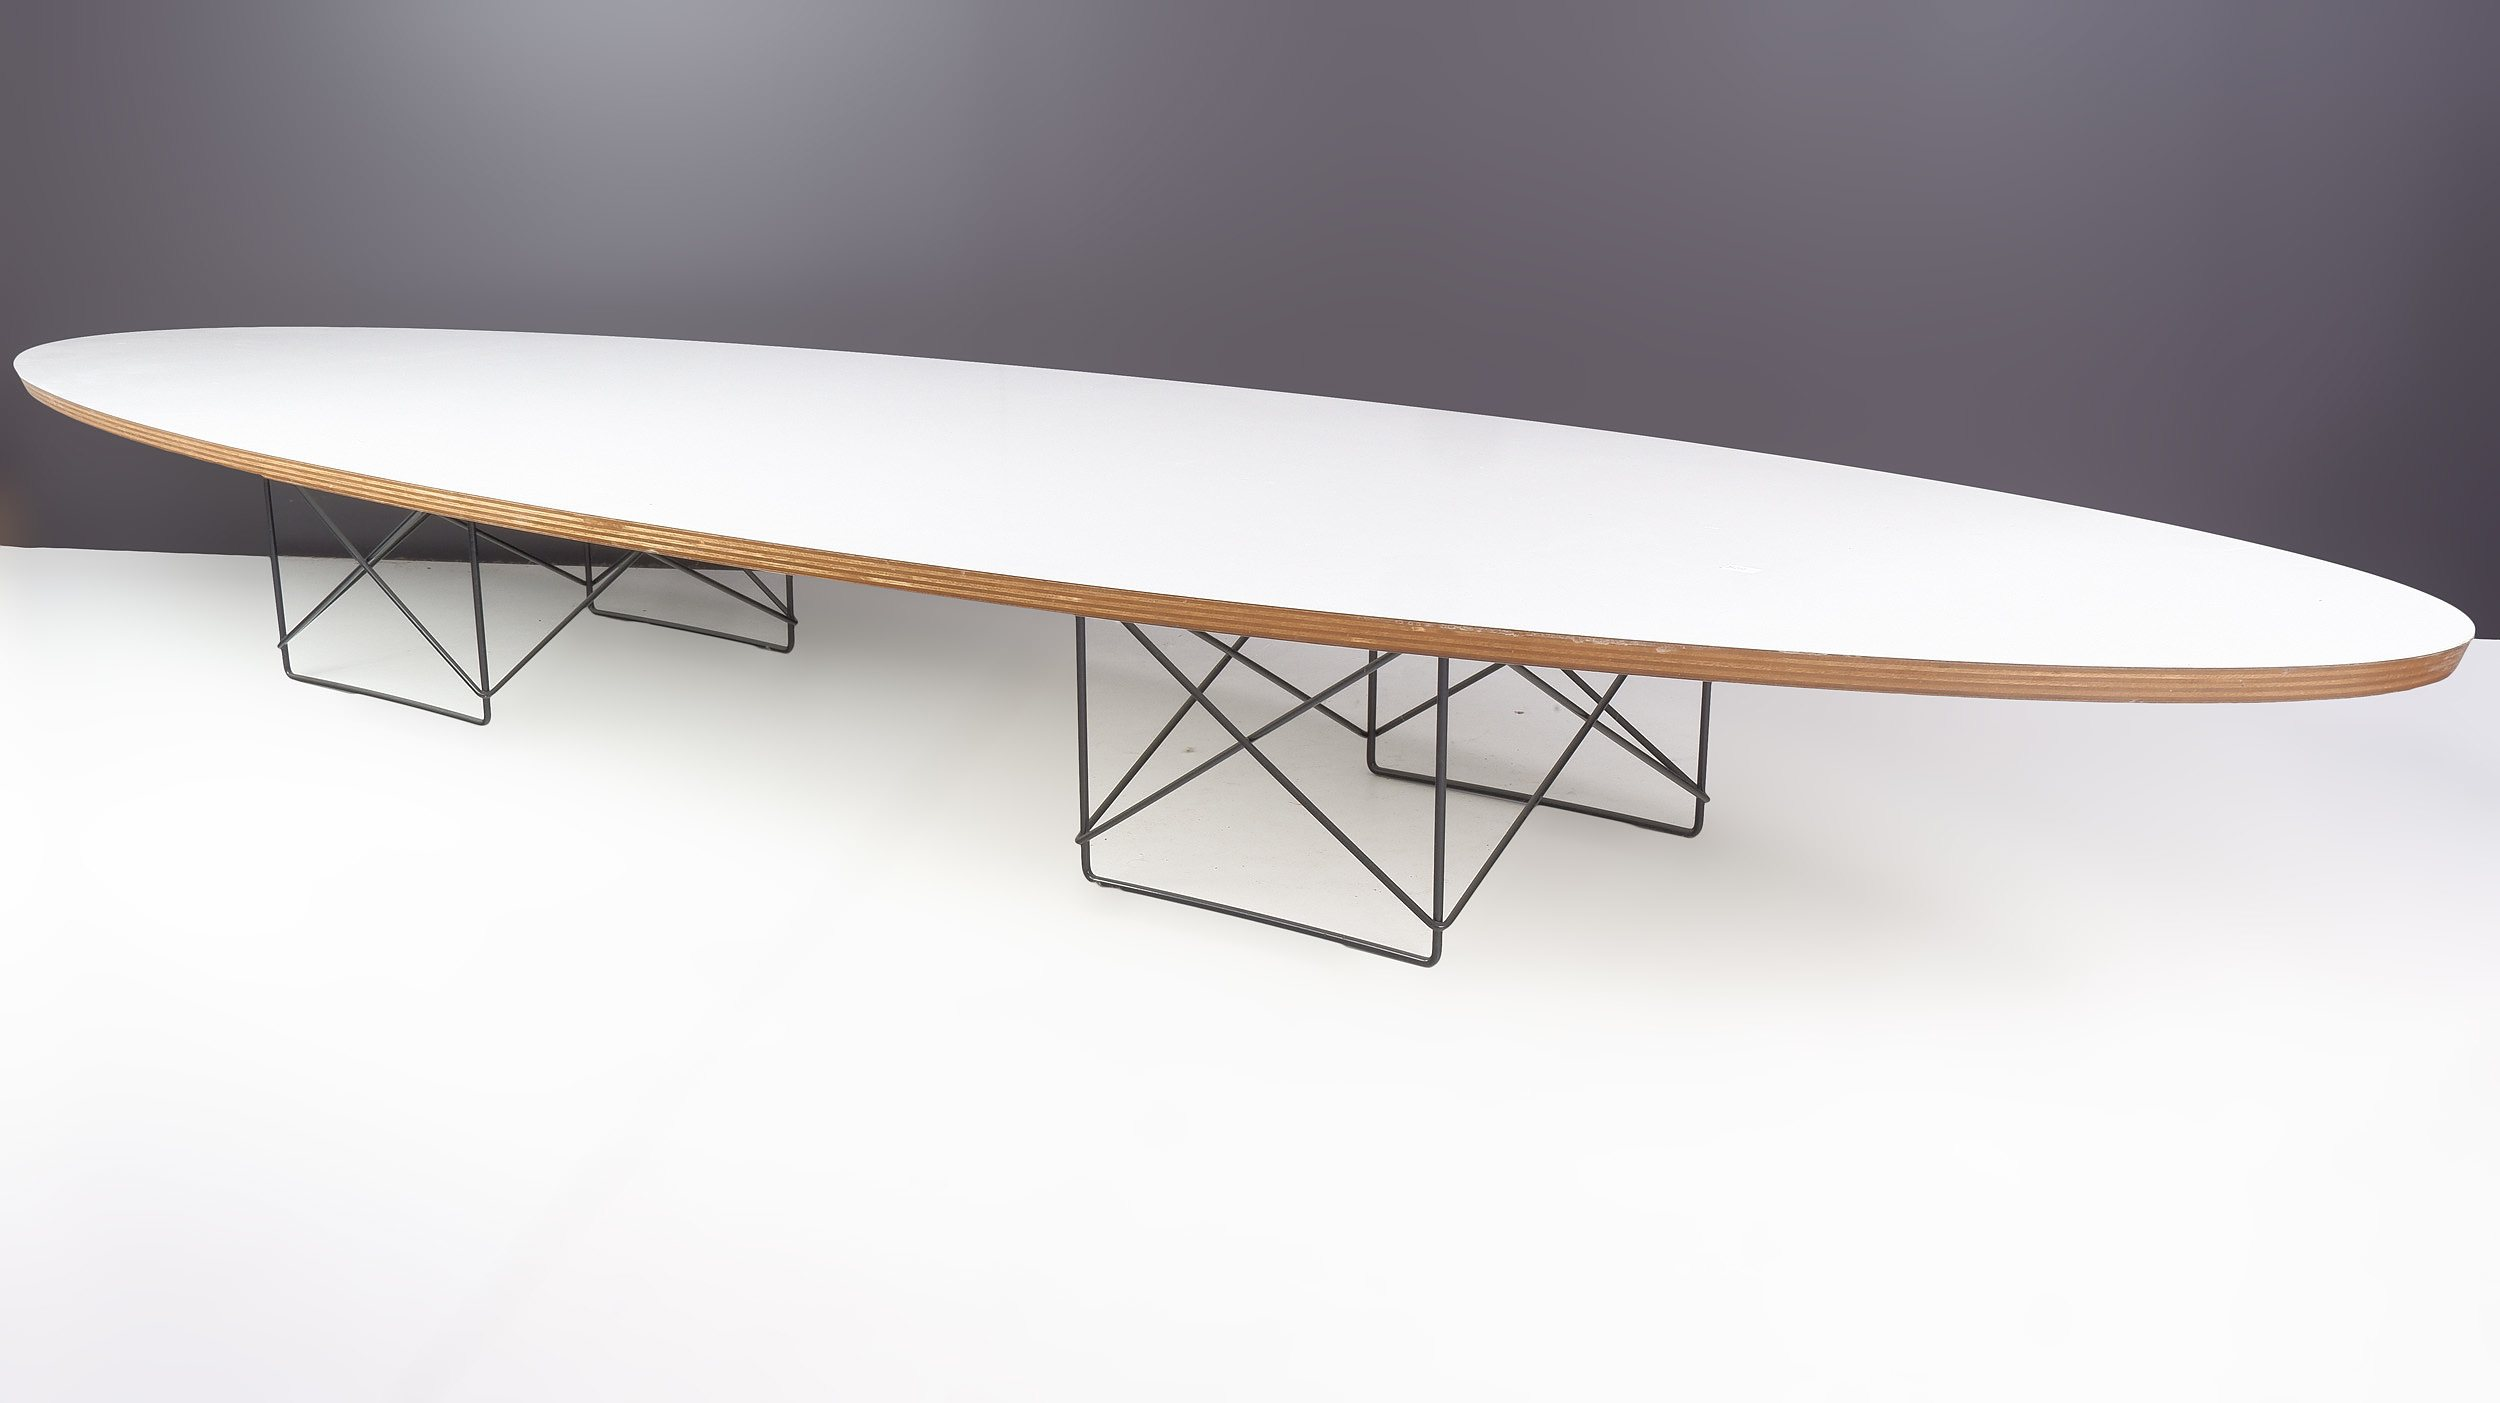 'Genuine Charles Eames Elliptical Coffee Table Manufactured by Vitra'